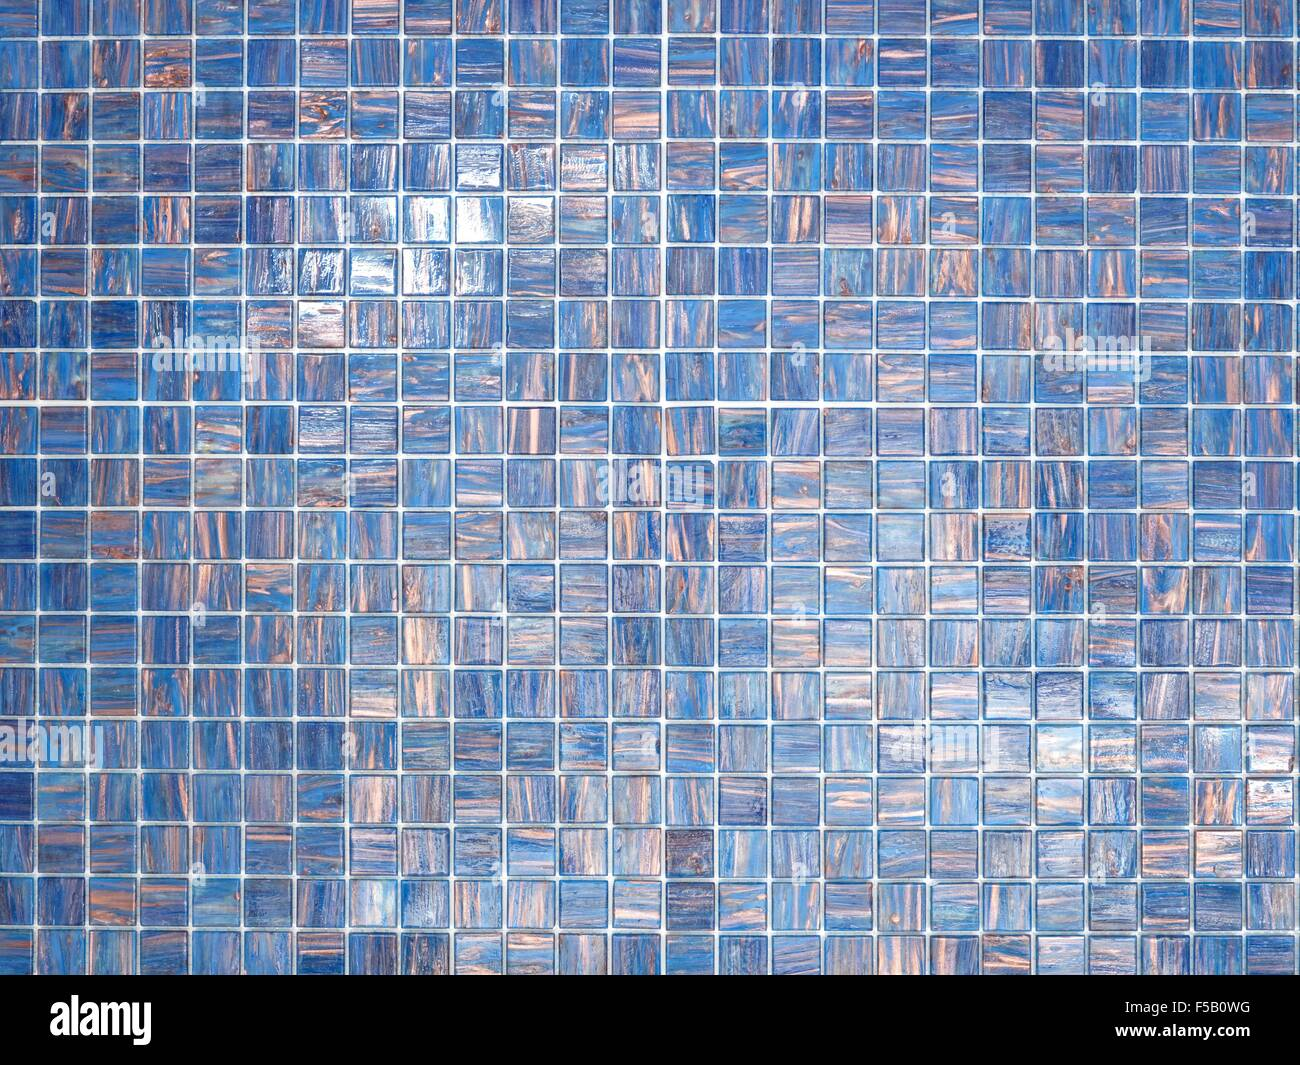 A close up shot of bathroom tiles Stock Photo: 89367308 - Alamy